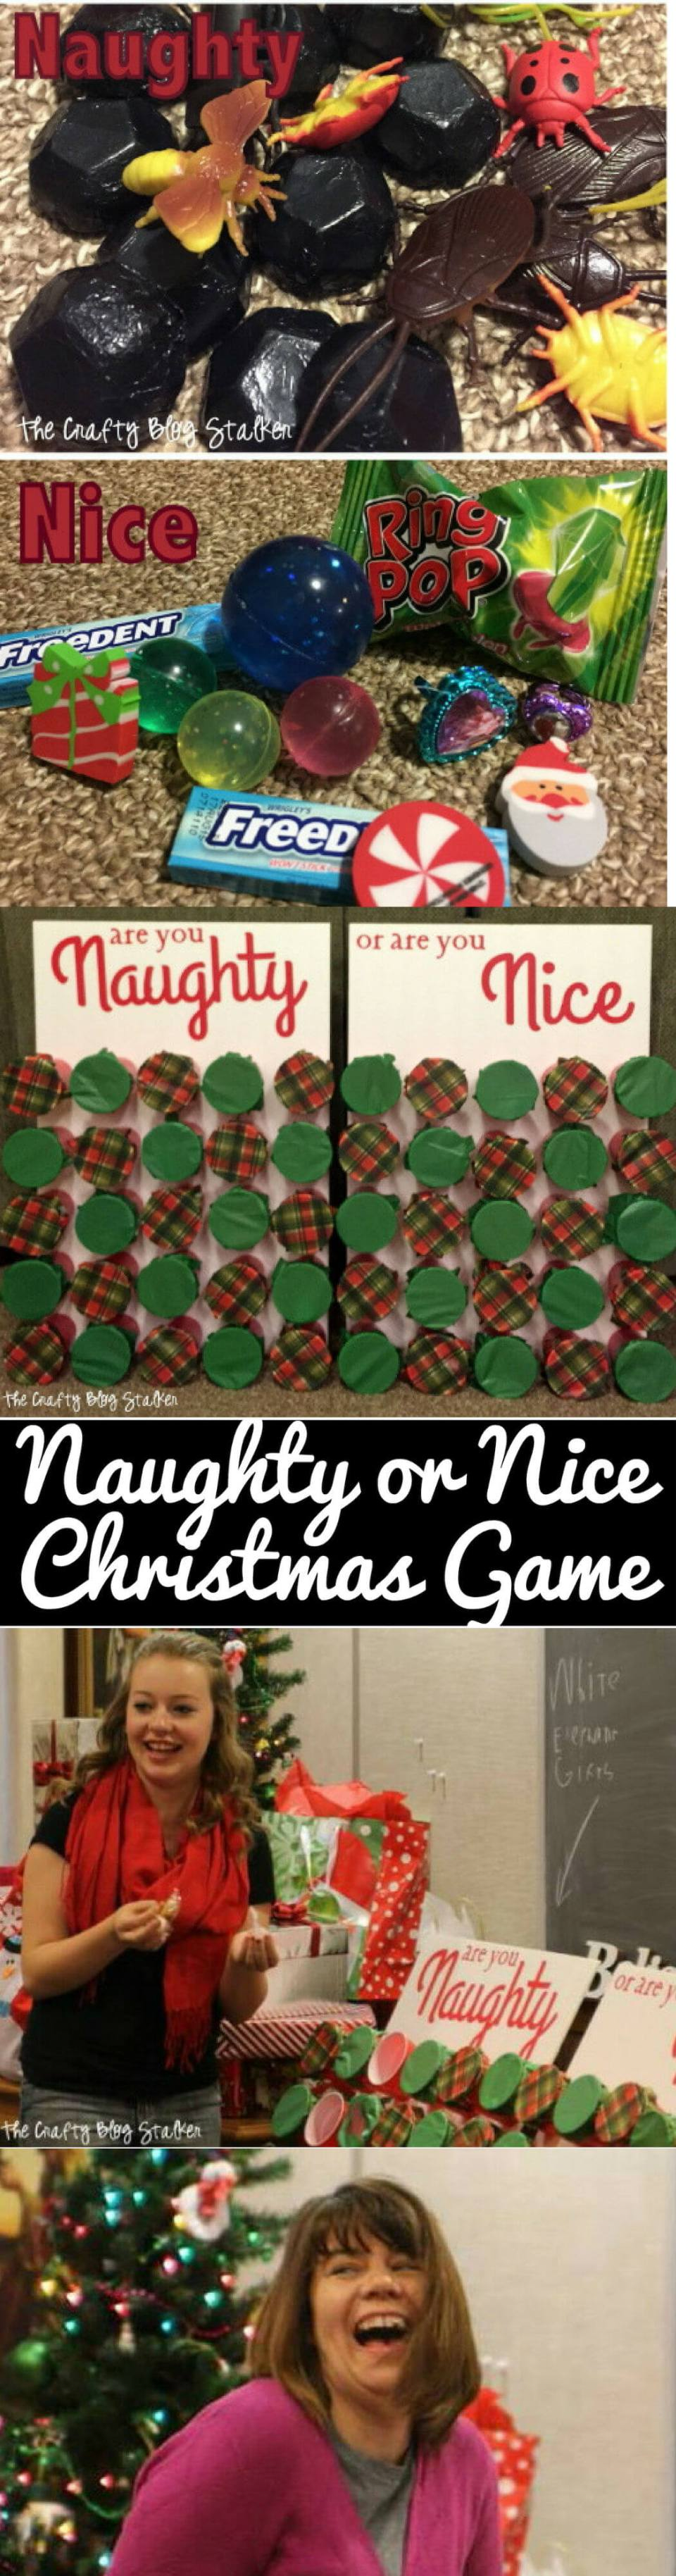 Naughty or Nice Christmas Game | Christmas Party Games for Adults - FarmFoodFamily.com